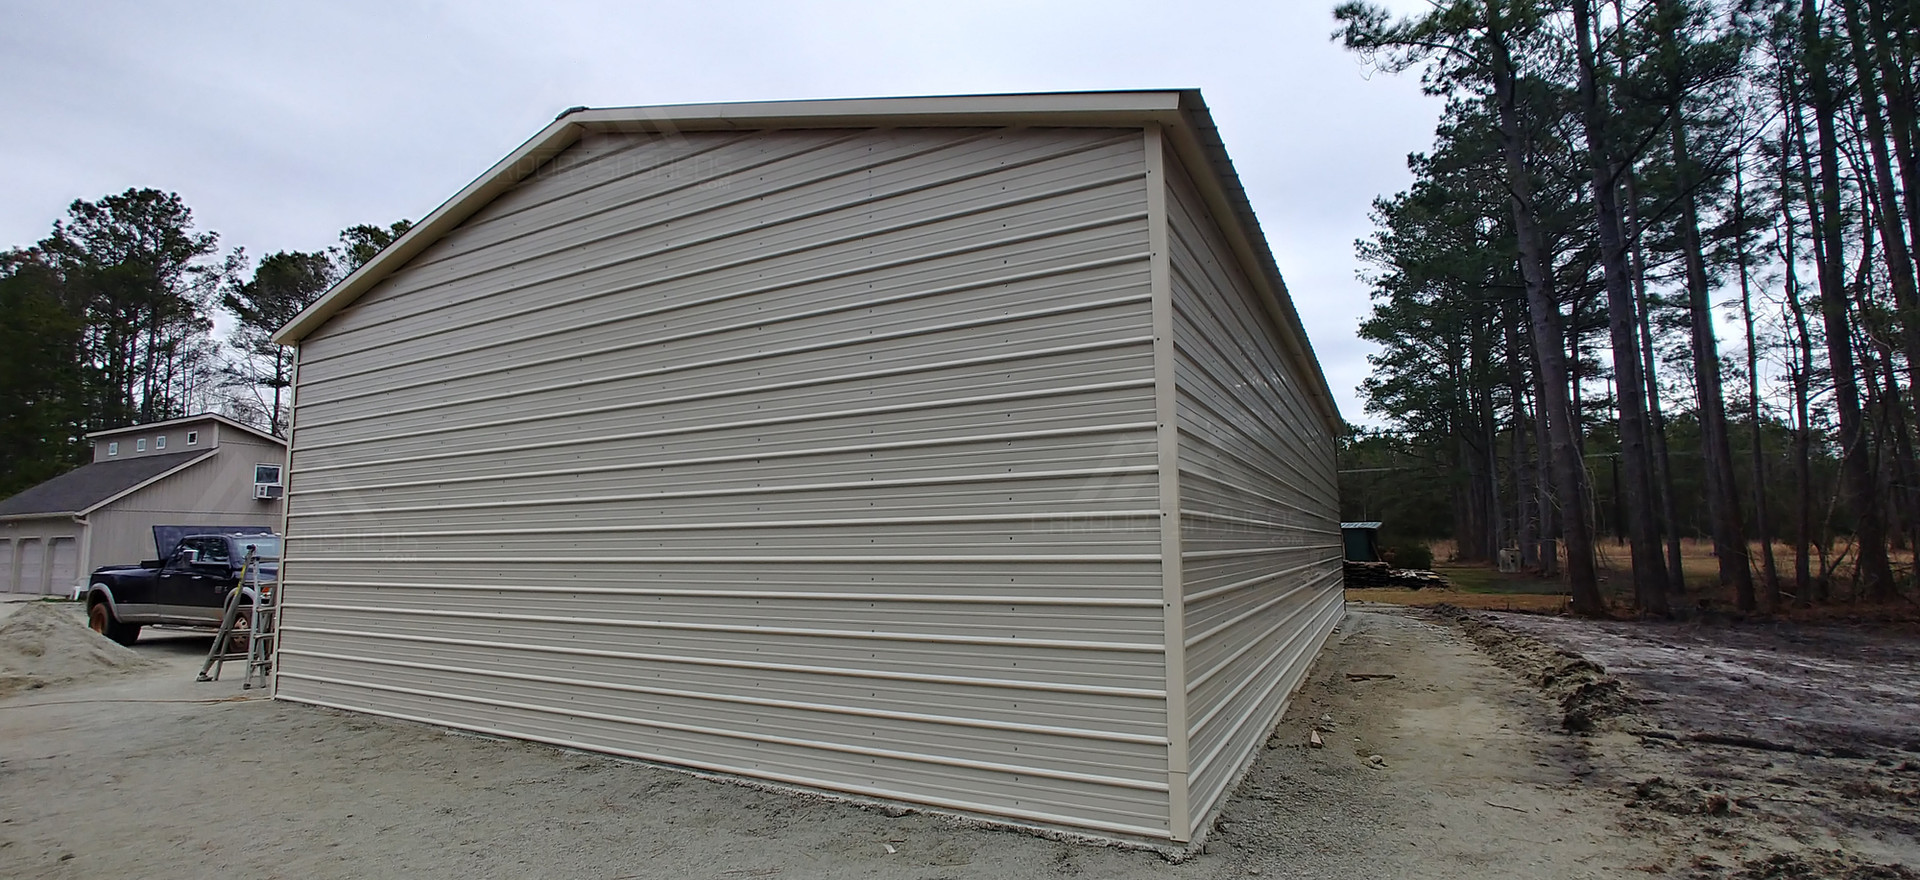 back and side view of 30x50x12 metal garage